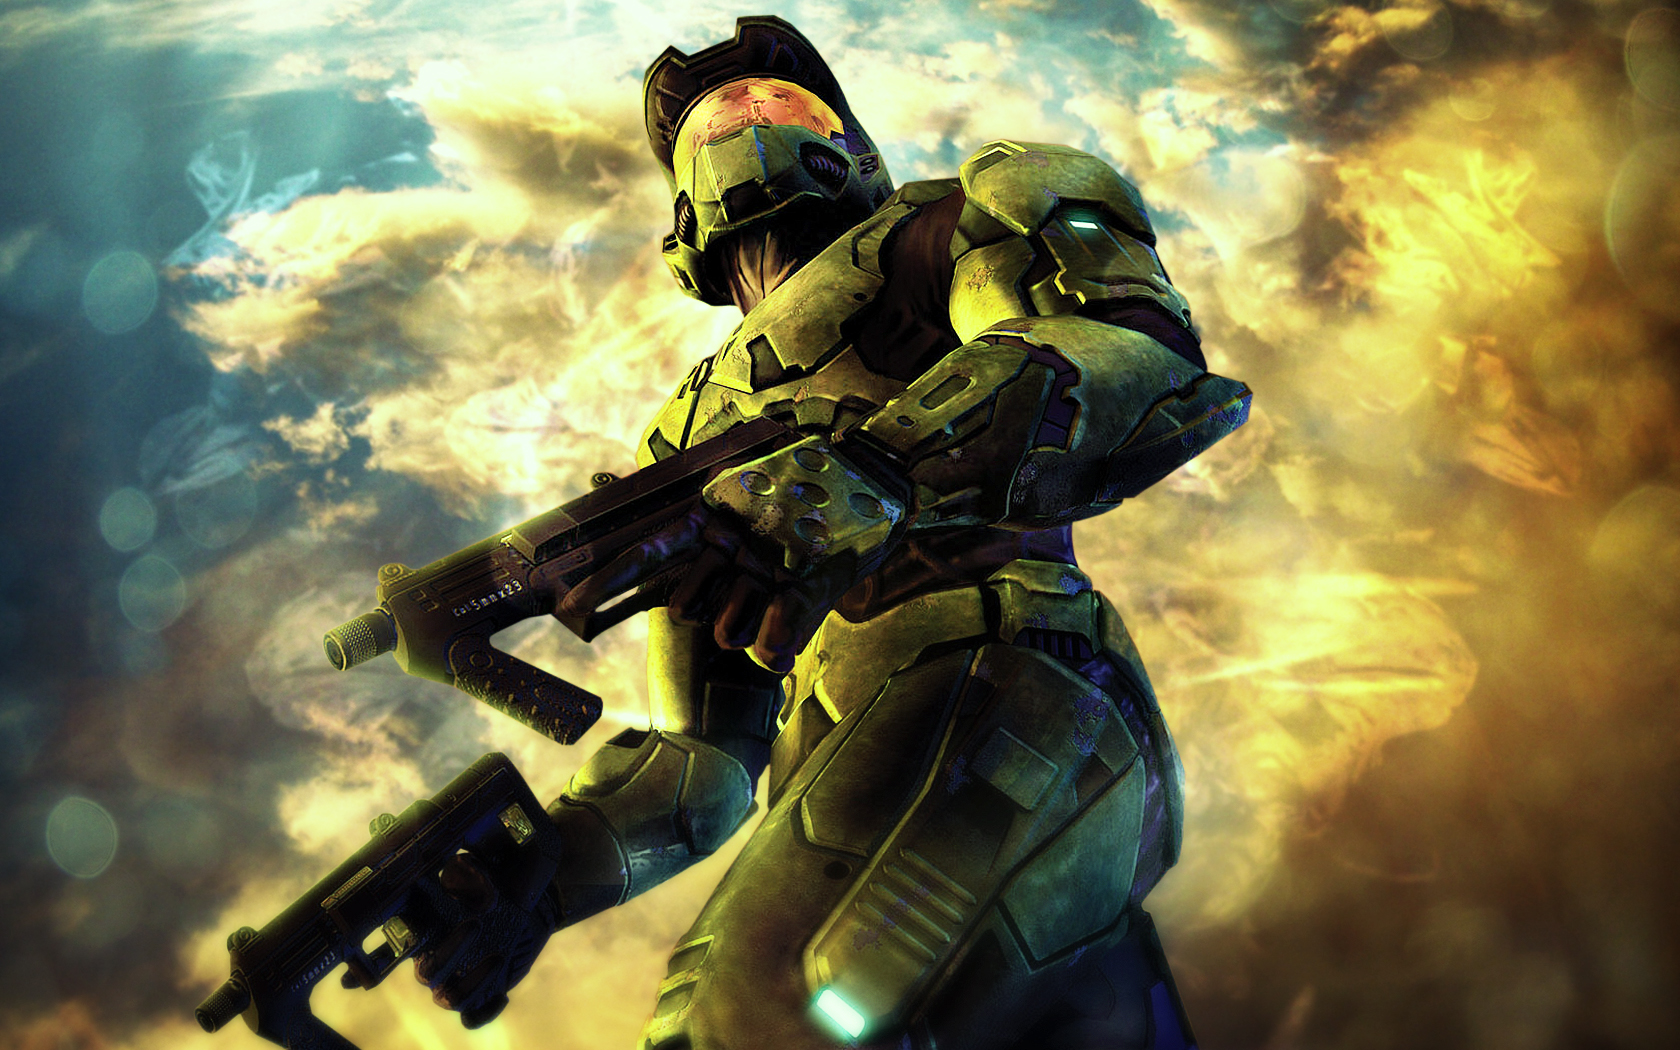 Halo Documentary Remaking The Legend Releases On October